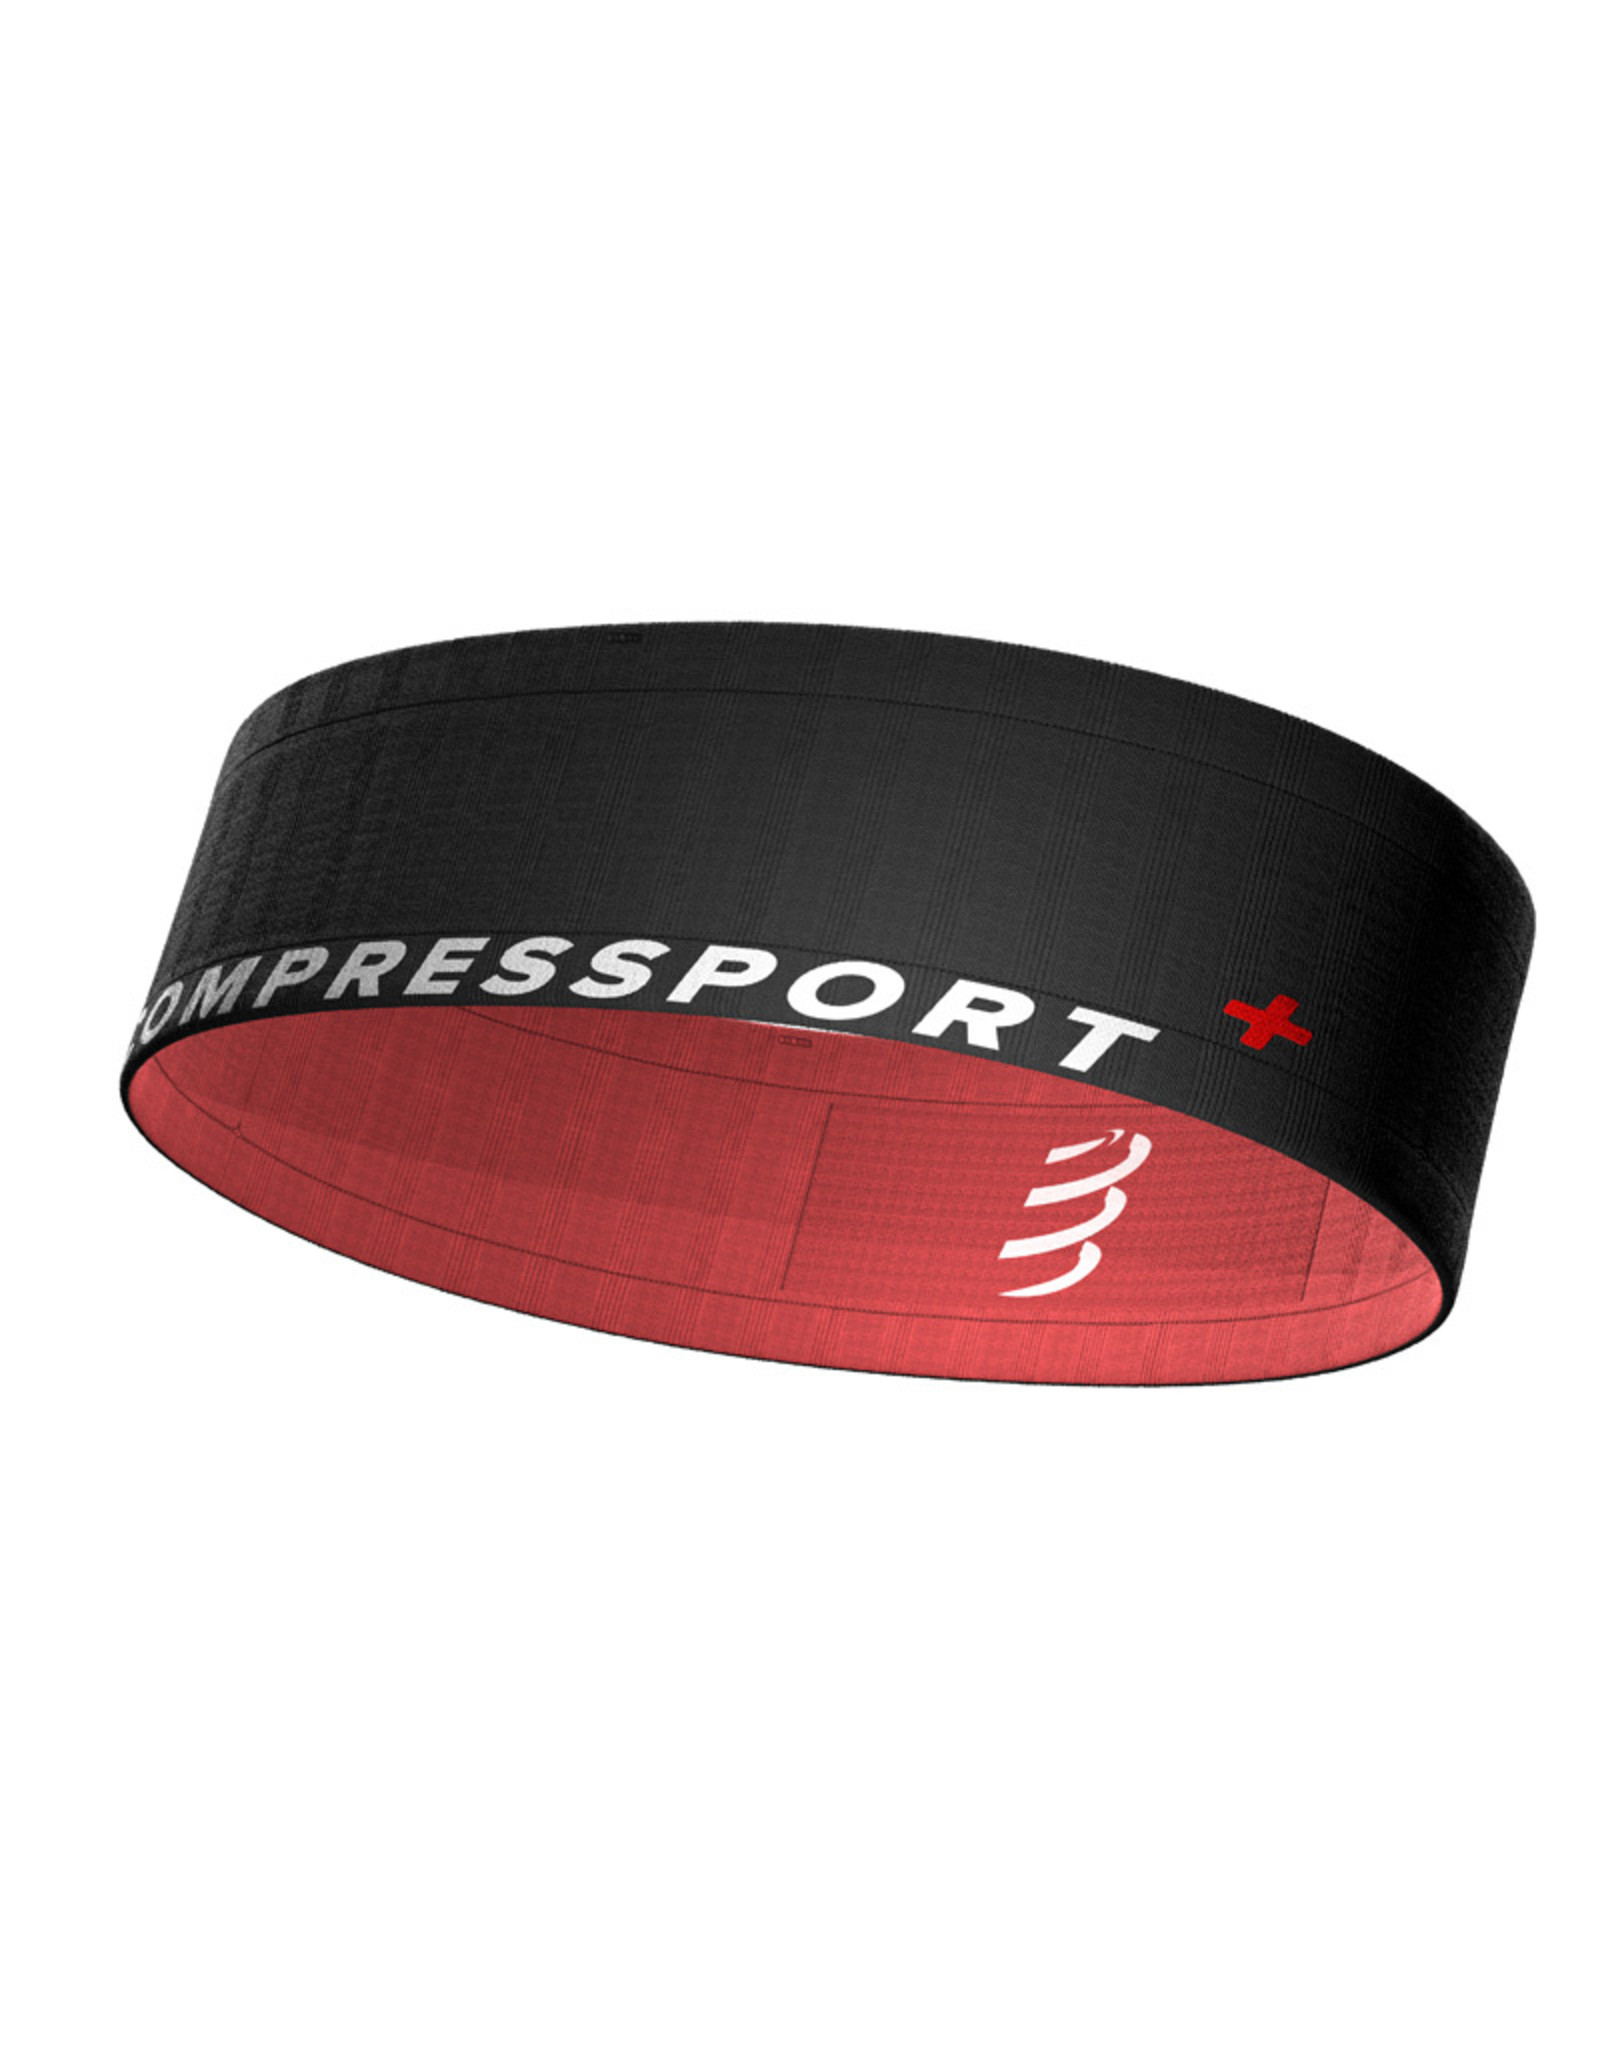 Compressport Free Belt - Noir/Rose